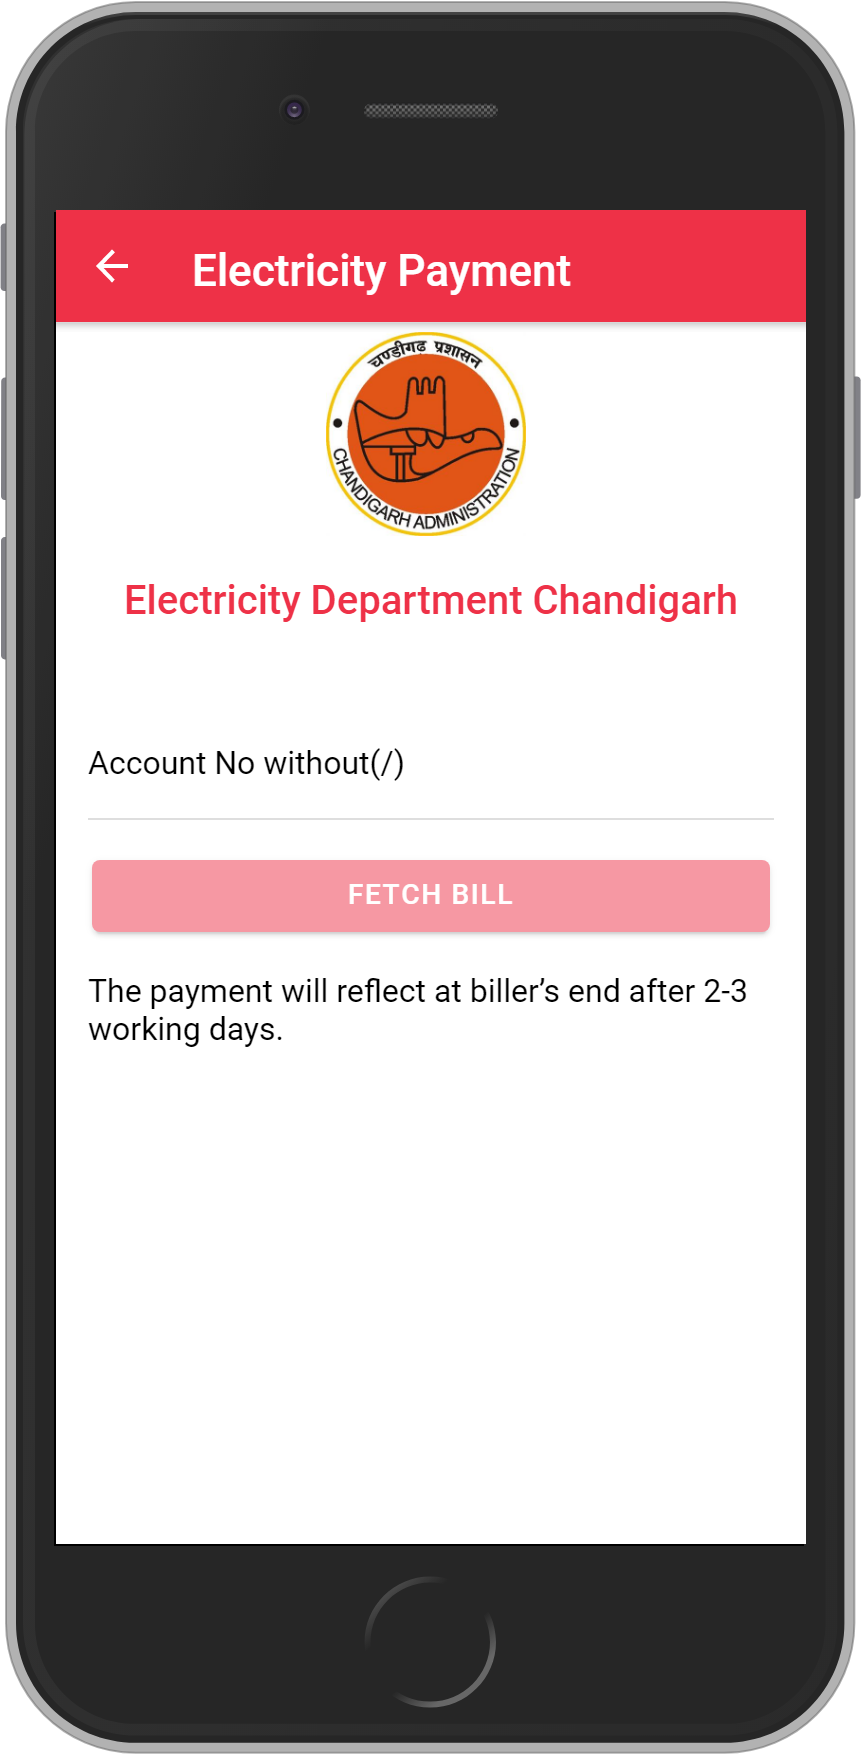 Get UNLIMITED <b>0.1%</b> CASHBACK on Electricity Department Chandigarh Bill Payment.